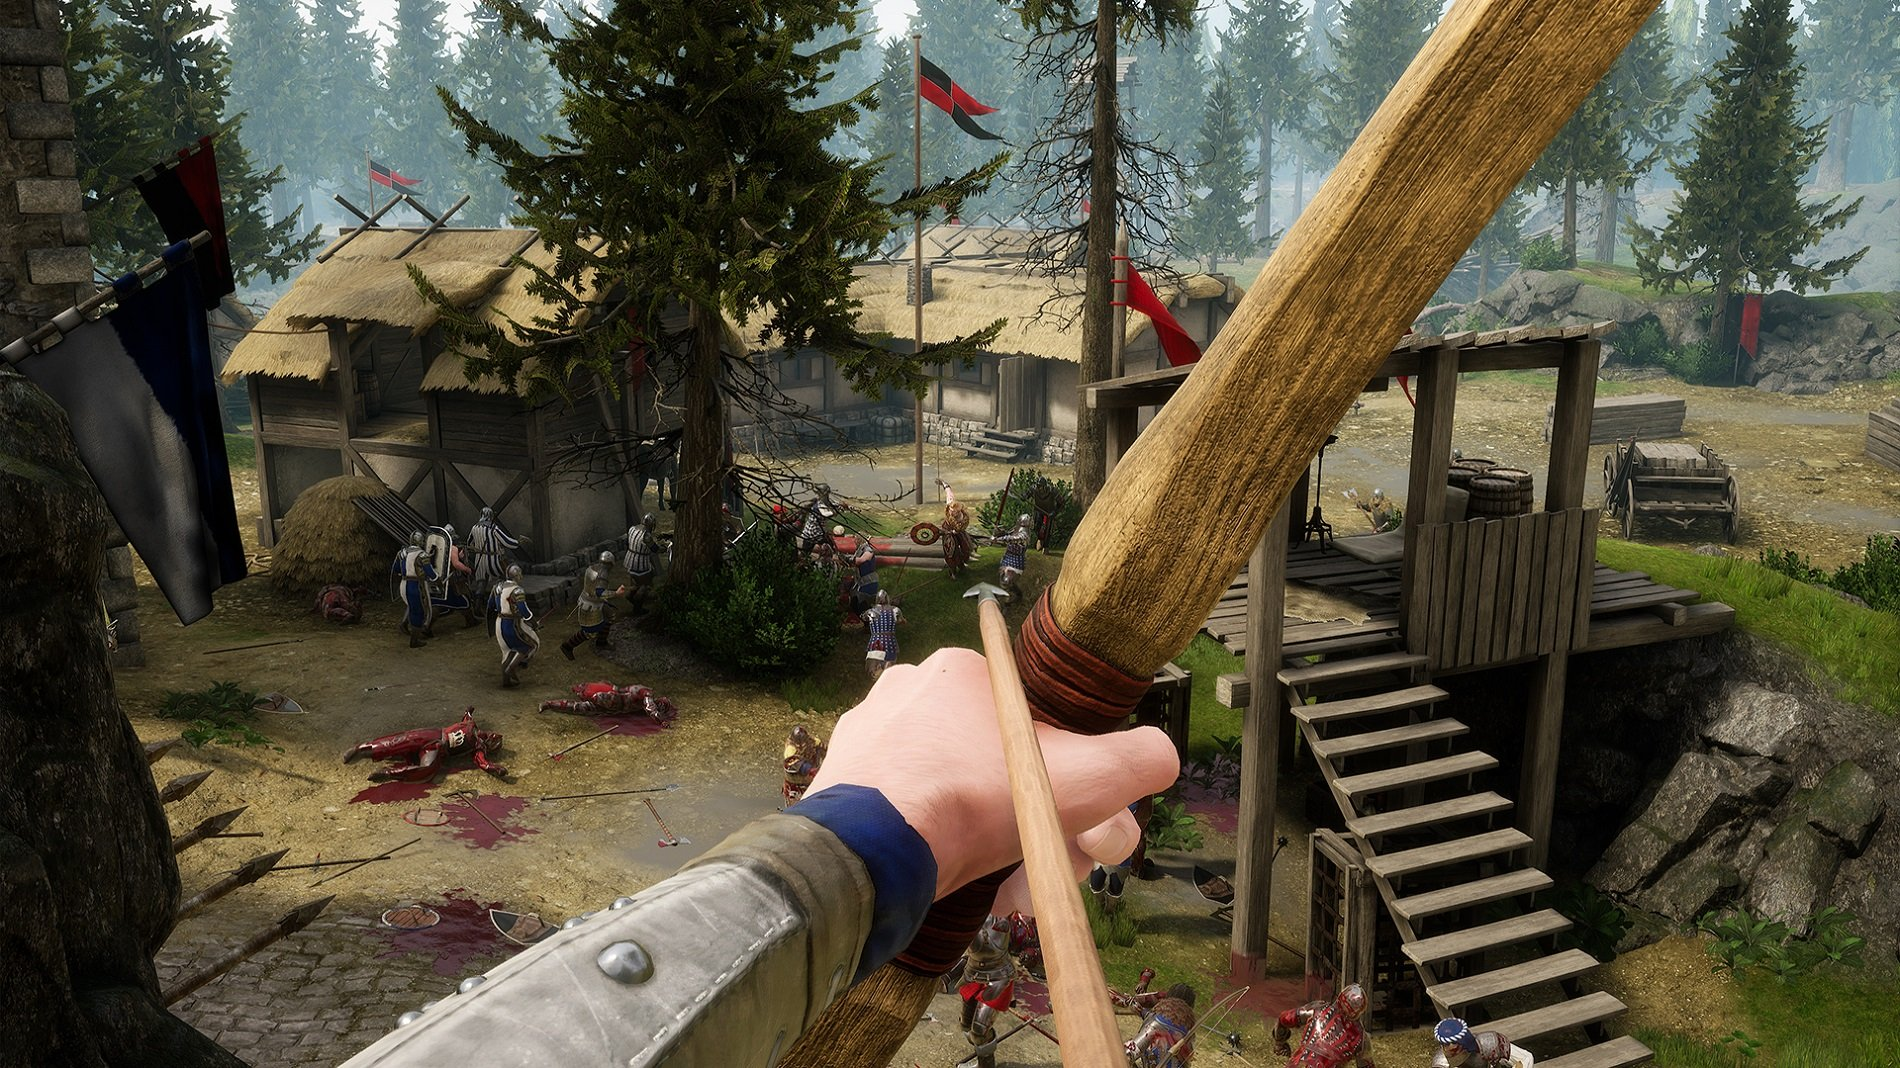 A bow can be a useful weapon to use in Mordhau's Battle Royale mode... just make sure you have another weapon available in your inventory for 1v1 duals.